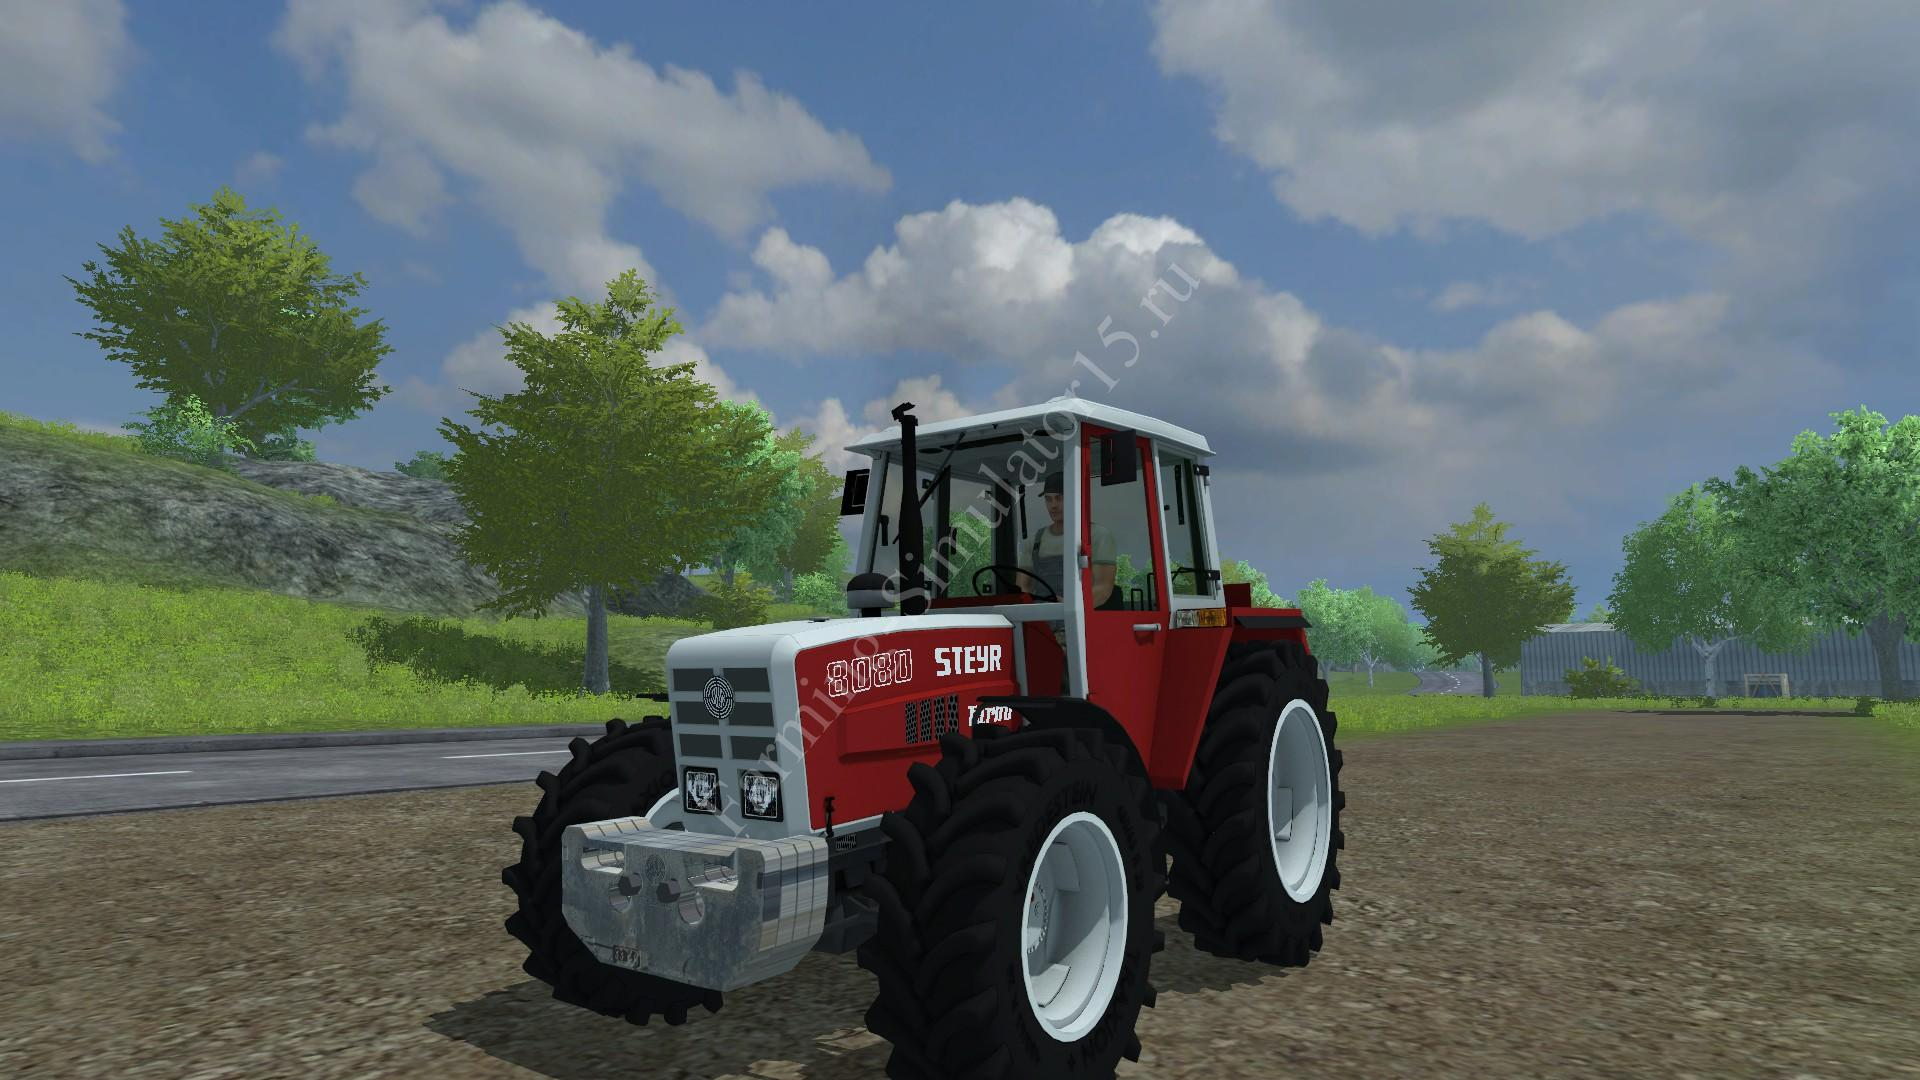 Мод противовеса Steyr weight v 1.0 Farming Simulator 2013, Farming Simulator 13